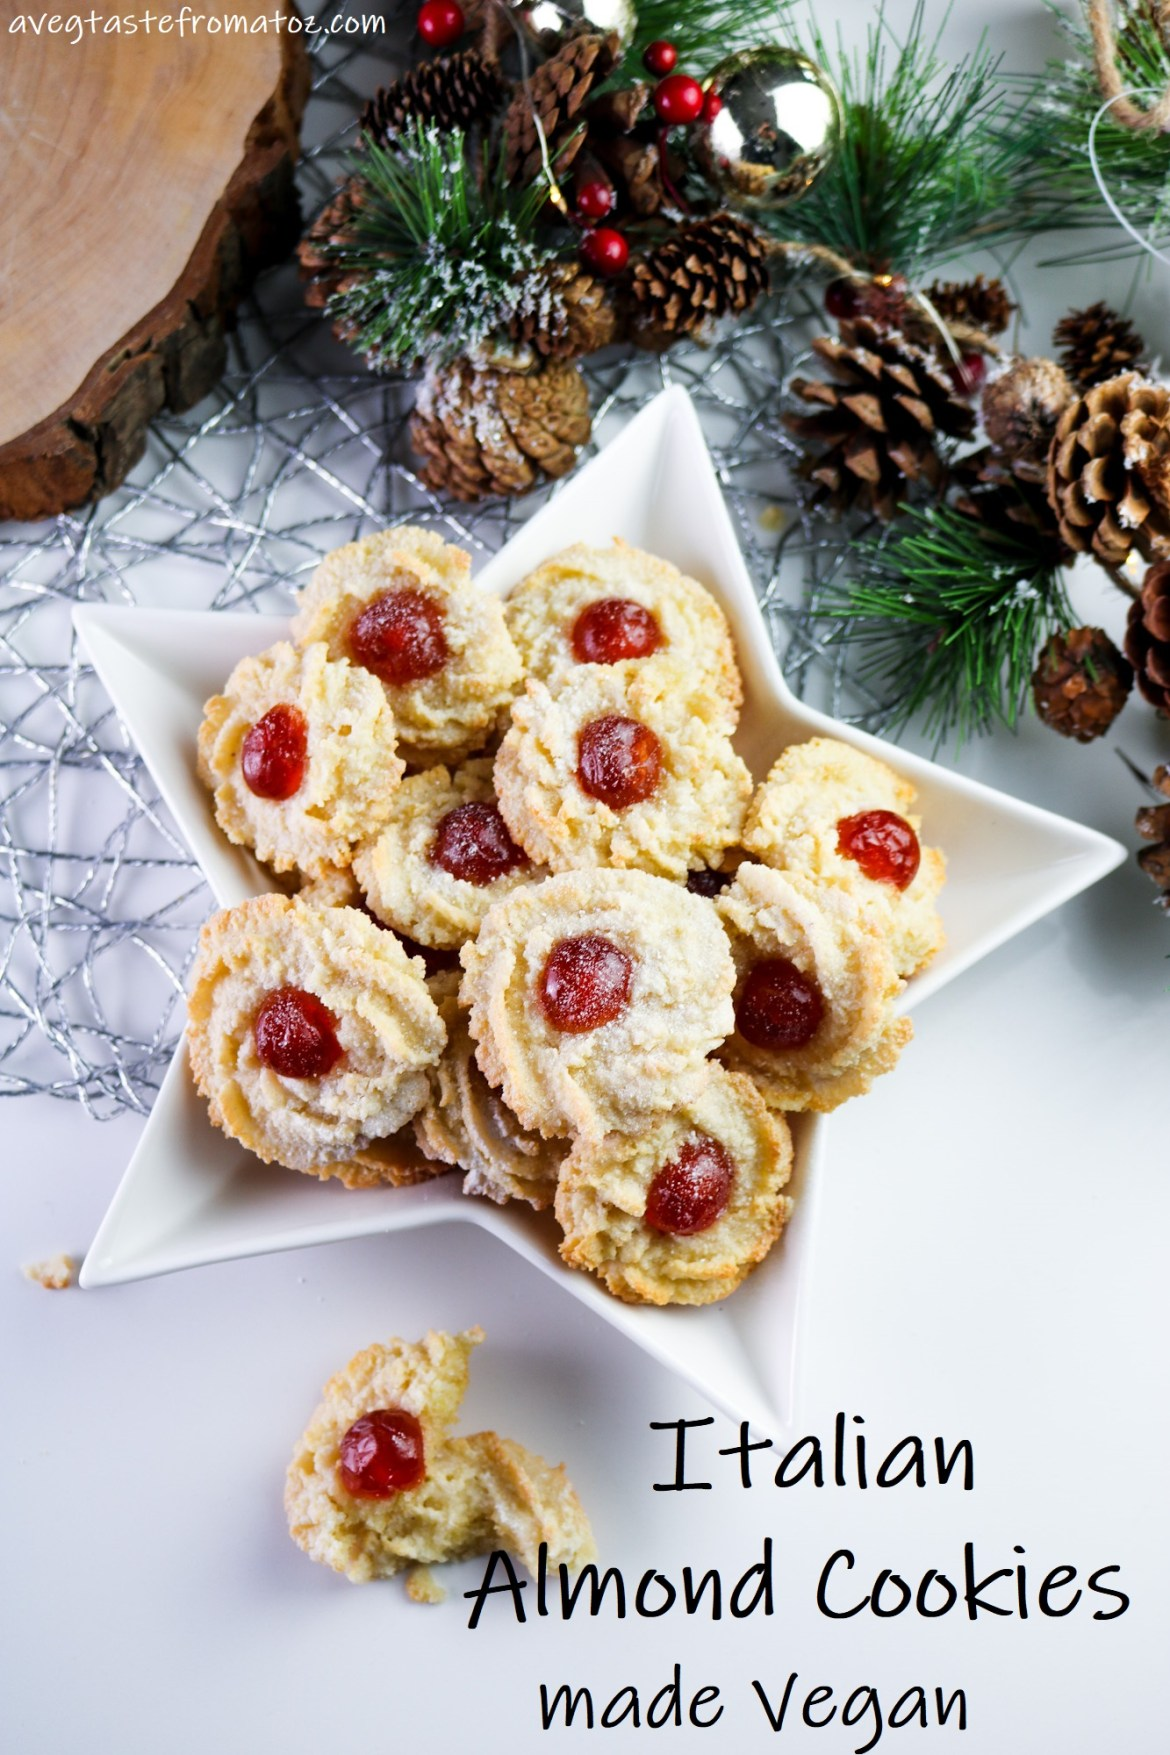 These Italian Almond Cookies are fragrant, soft, sweet and so scrumptious! This 100% vegan friendly version has nothing to envy the traditional one, I promise. #christmas #cookies #holidays #vegan #vegetarian #eggfree #aquafaba #cherries #glacé #italiancookies #traditions #festive #soft #vegancookies